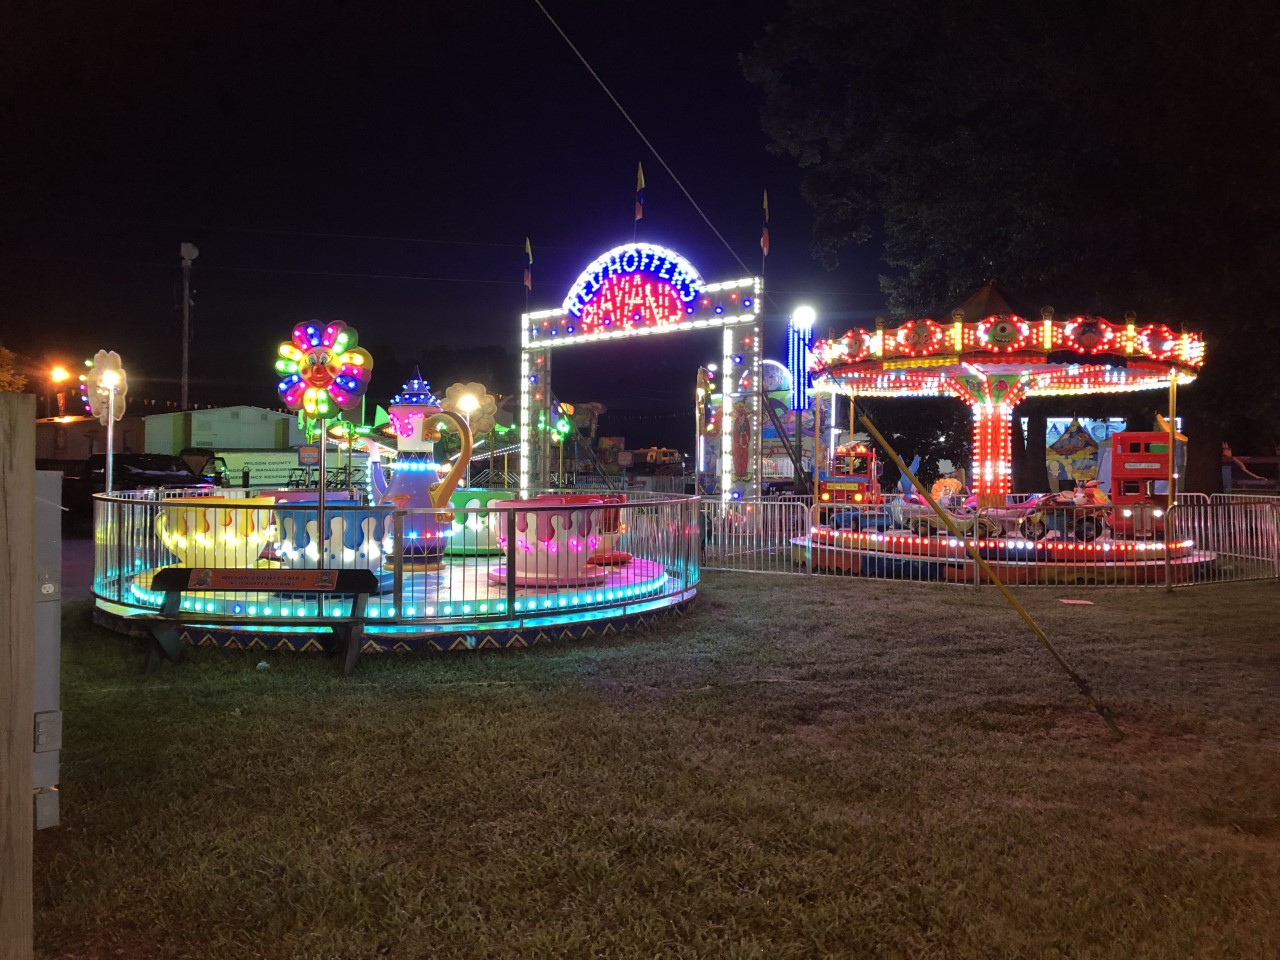 Wilson County fair kid rides